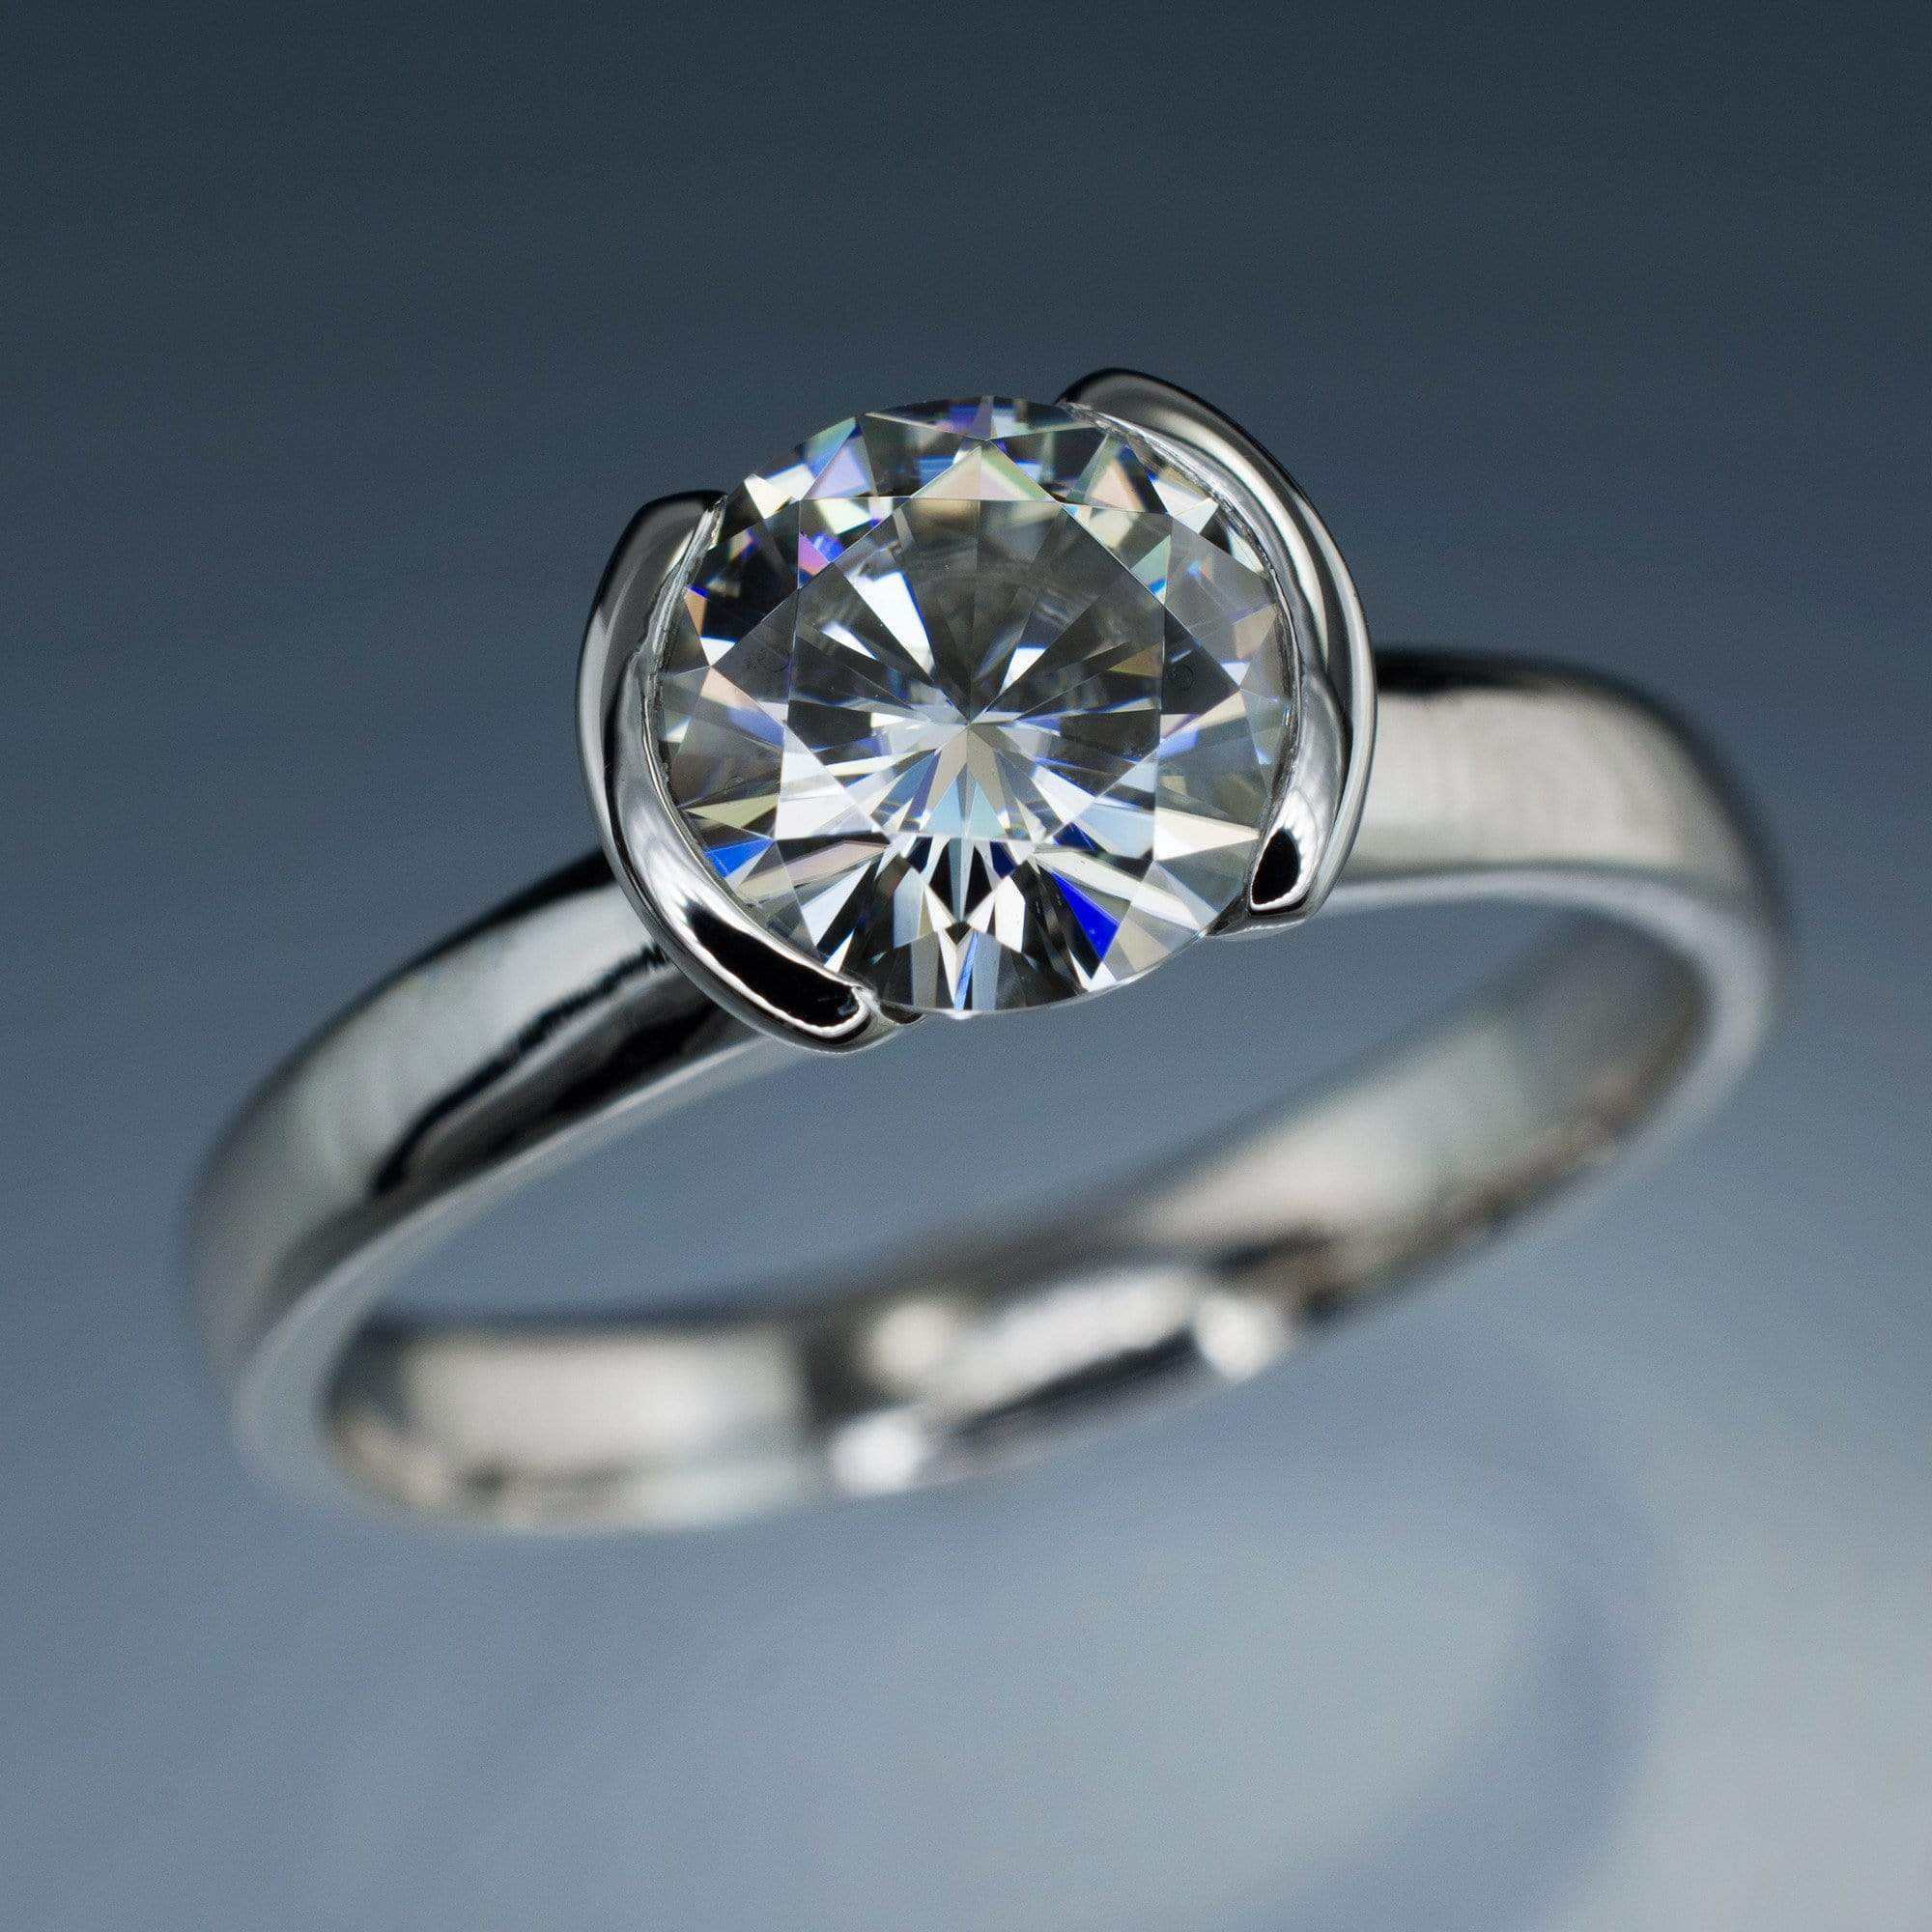 Brilliant Cut Round Moissanite Half Bezel Solitaire Engagement Ring